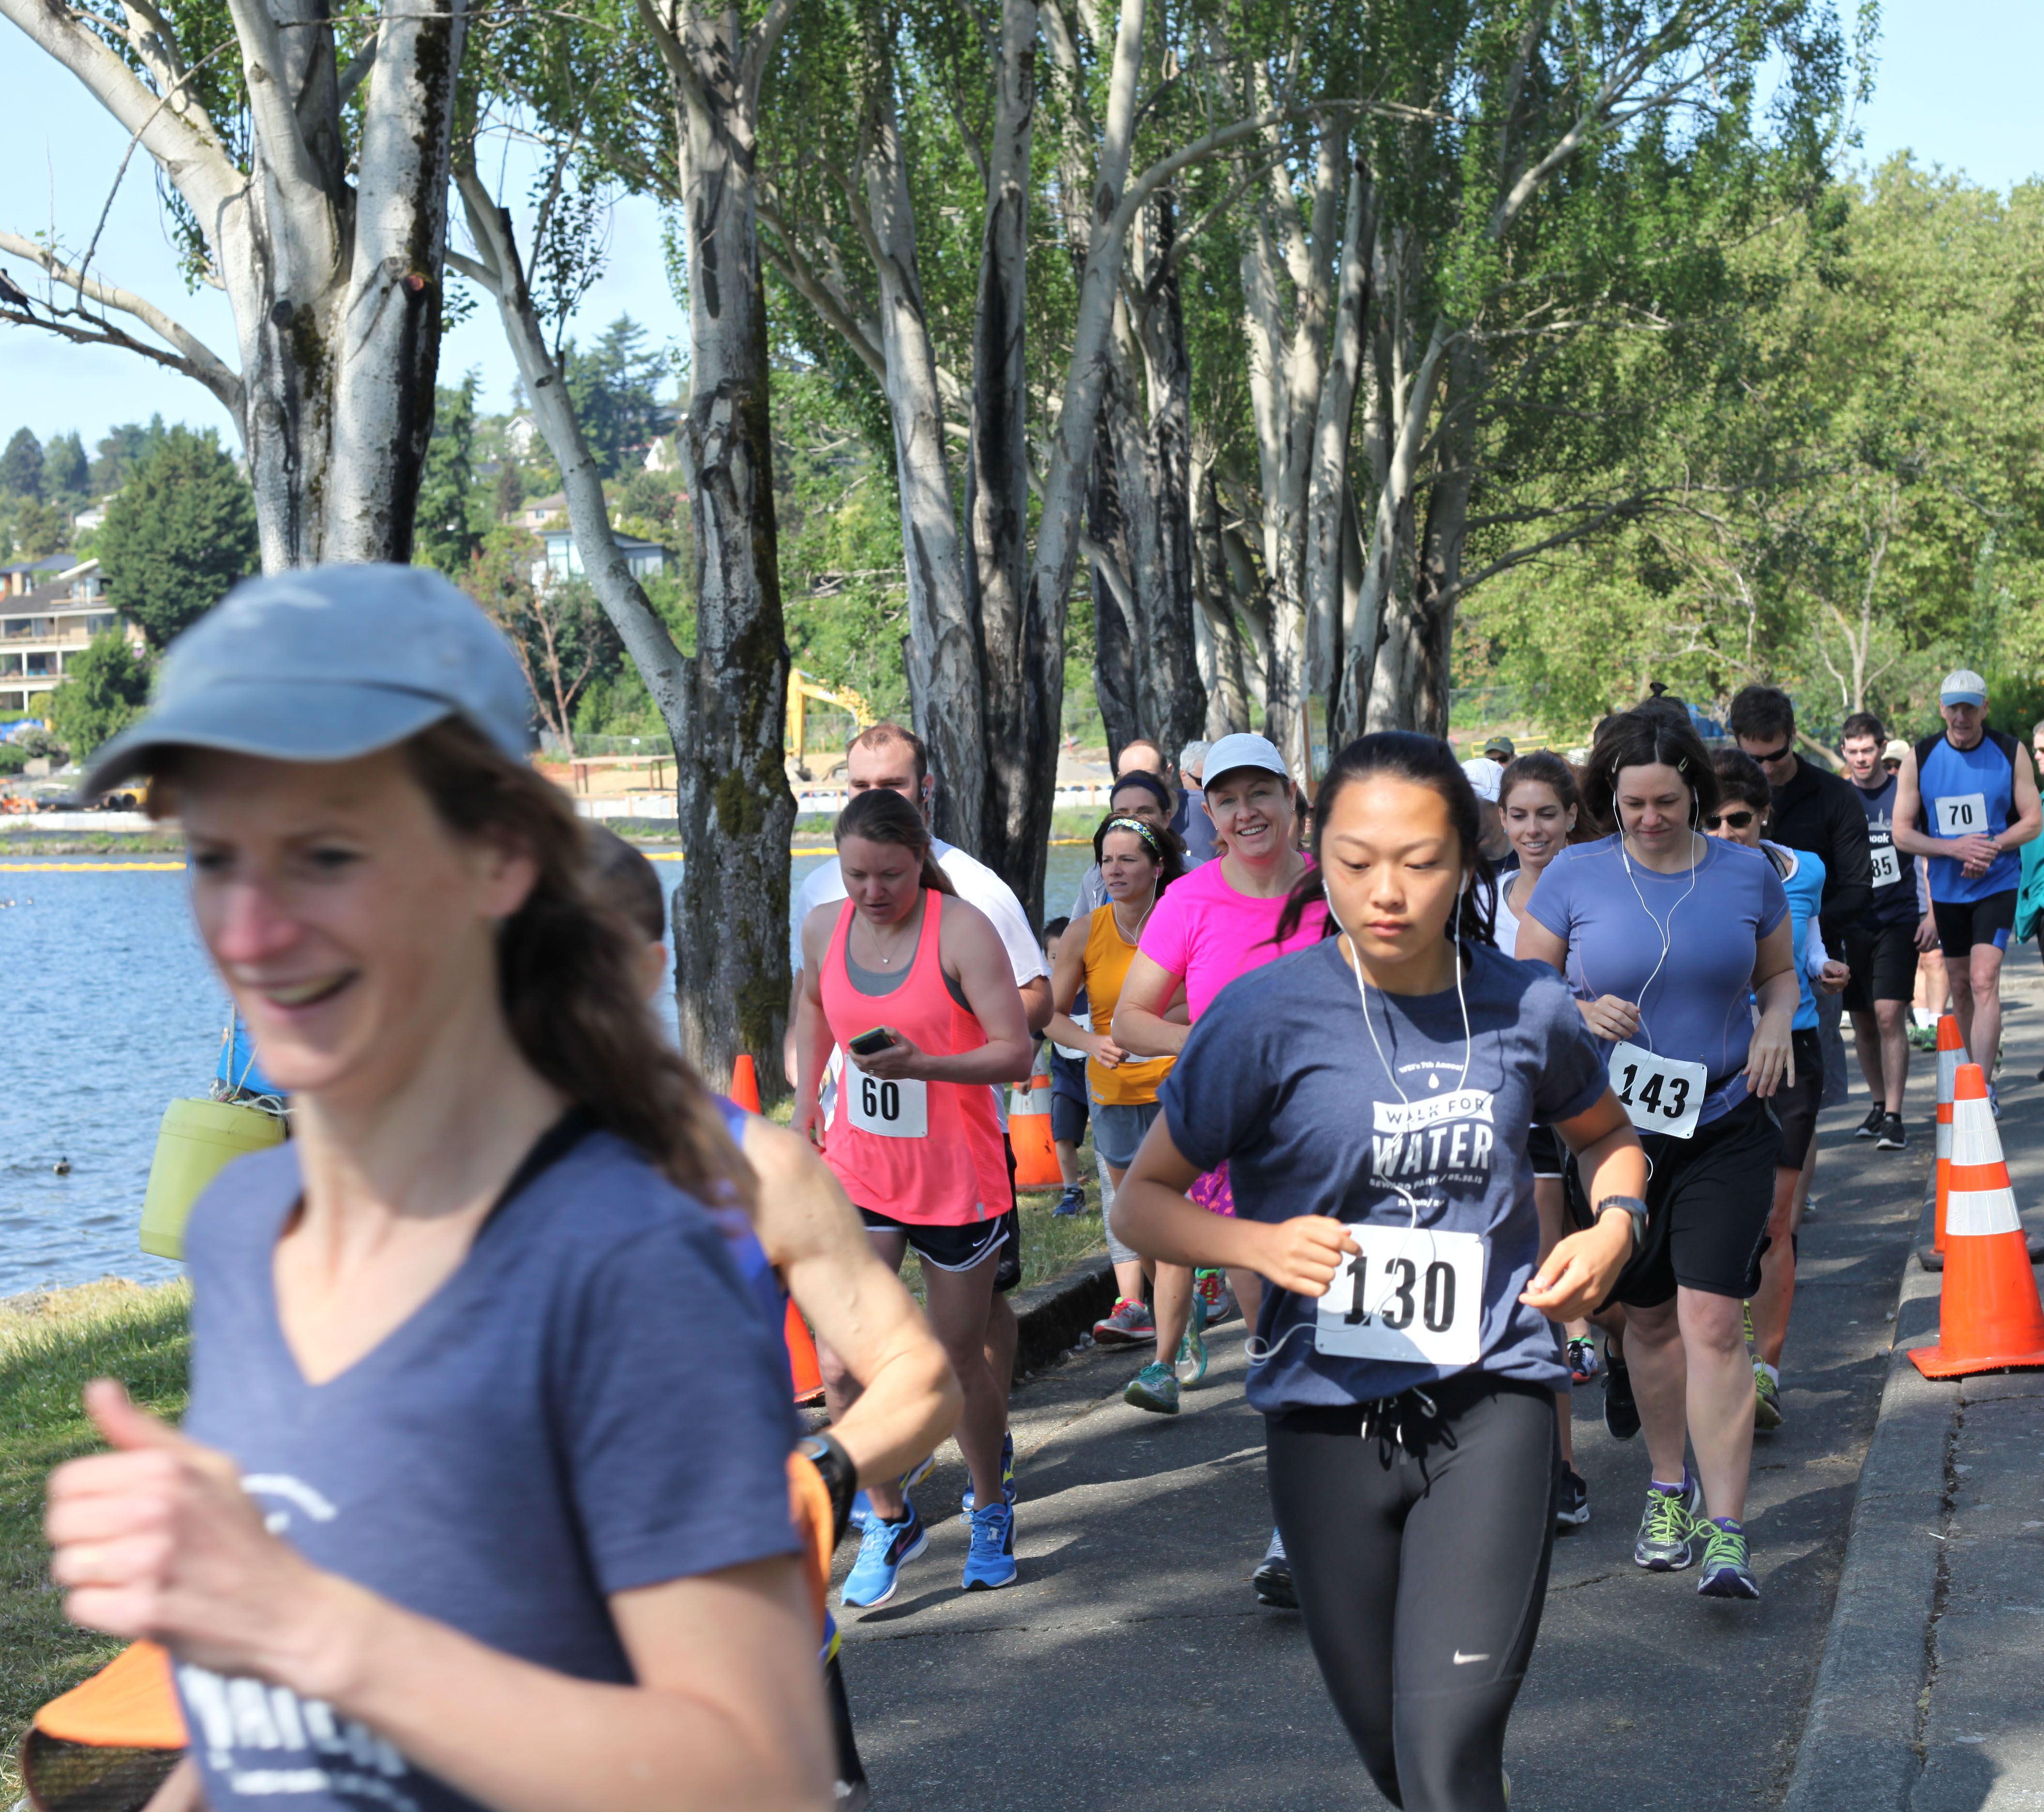 Walk for Water 5k                                                                                                     May 19th